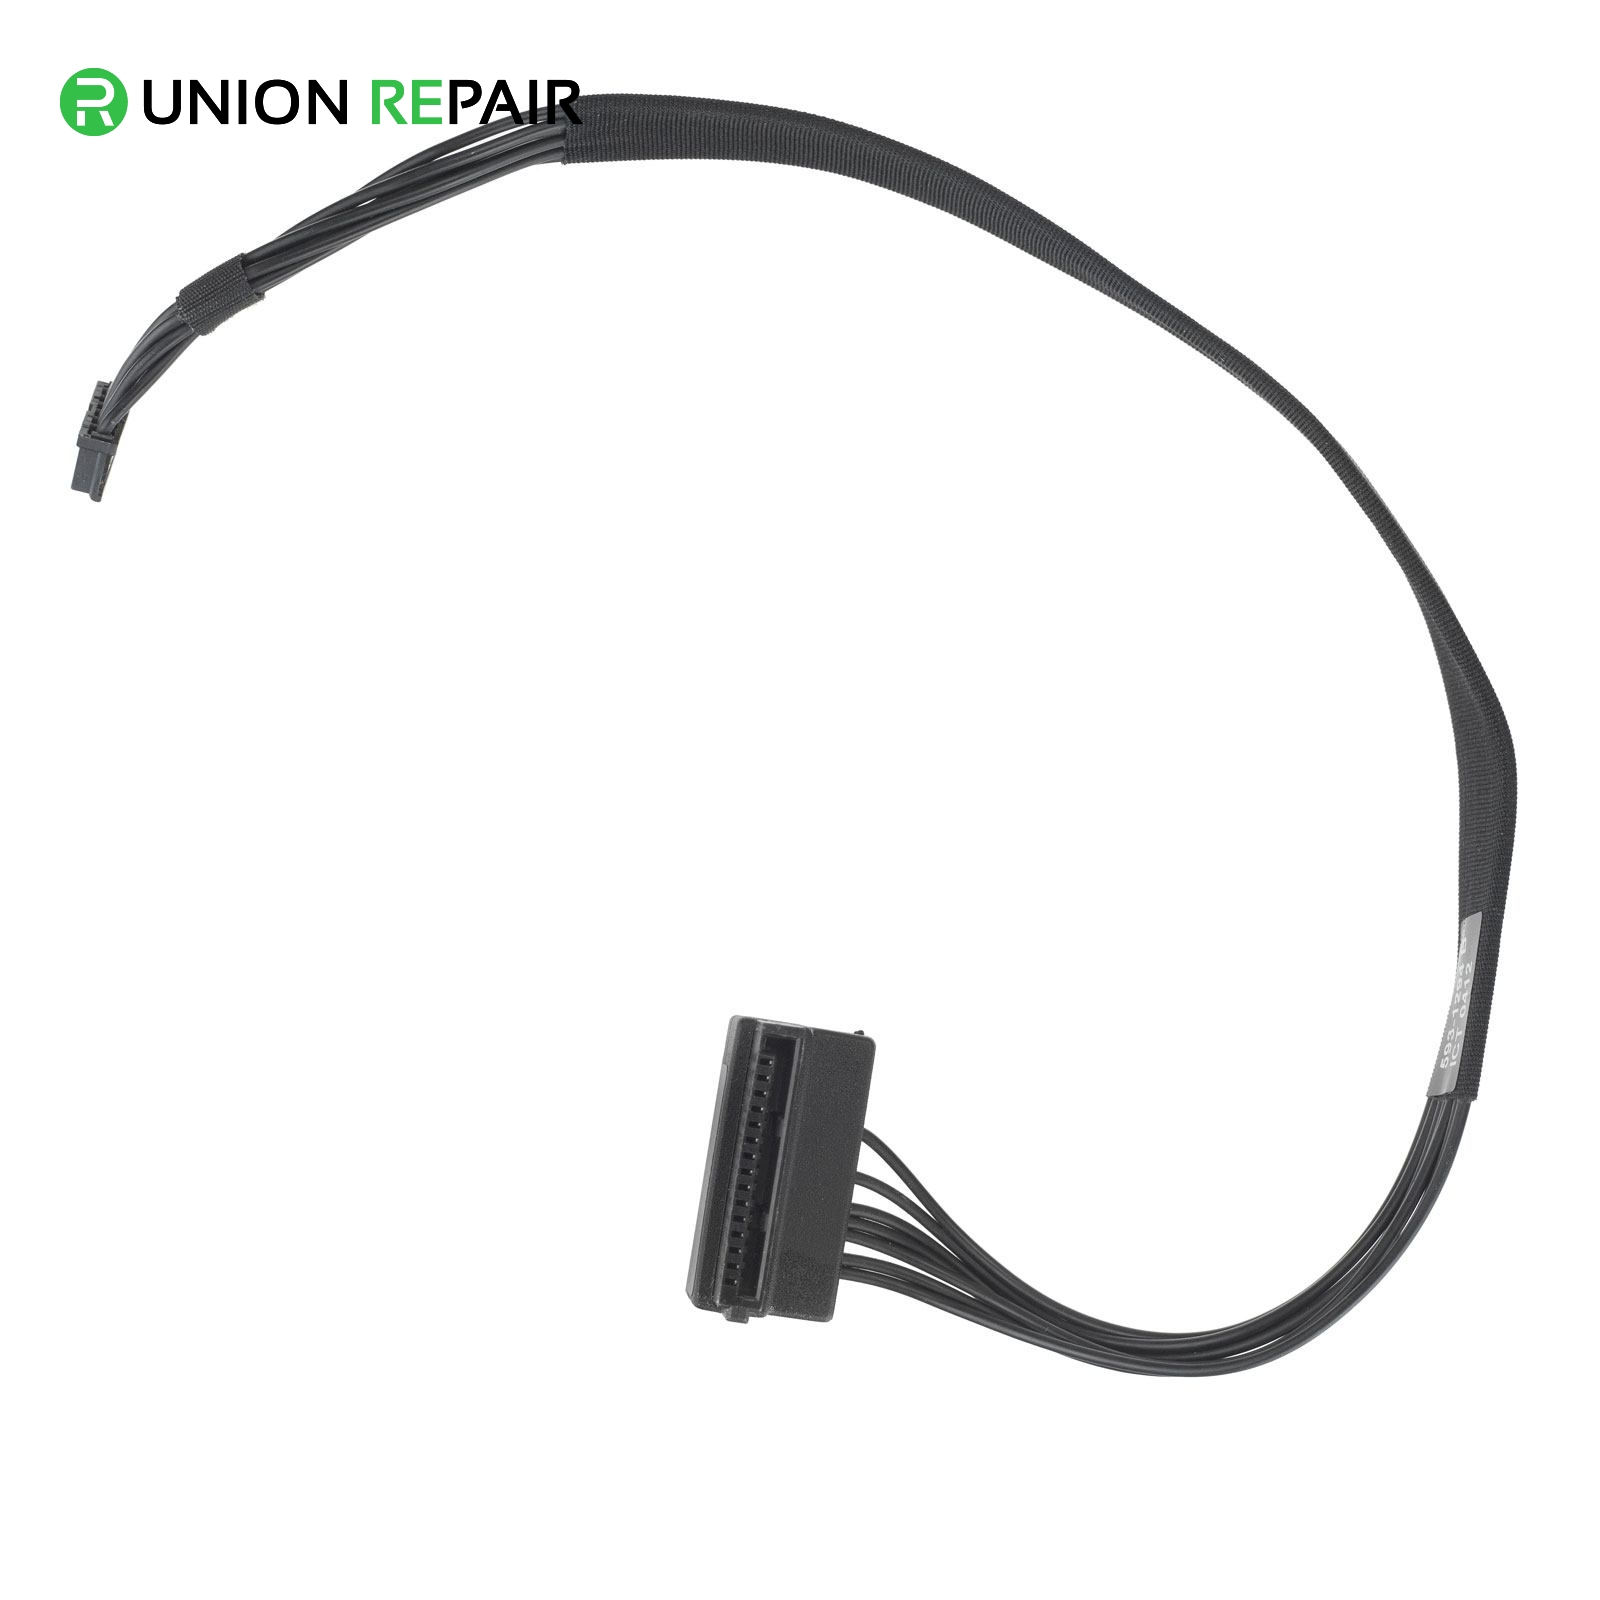 Hard Drive Power Cable For Imac 21 5 Quot A1311 Mid 2011